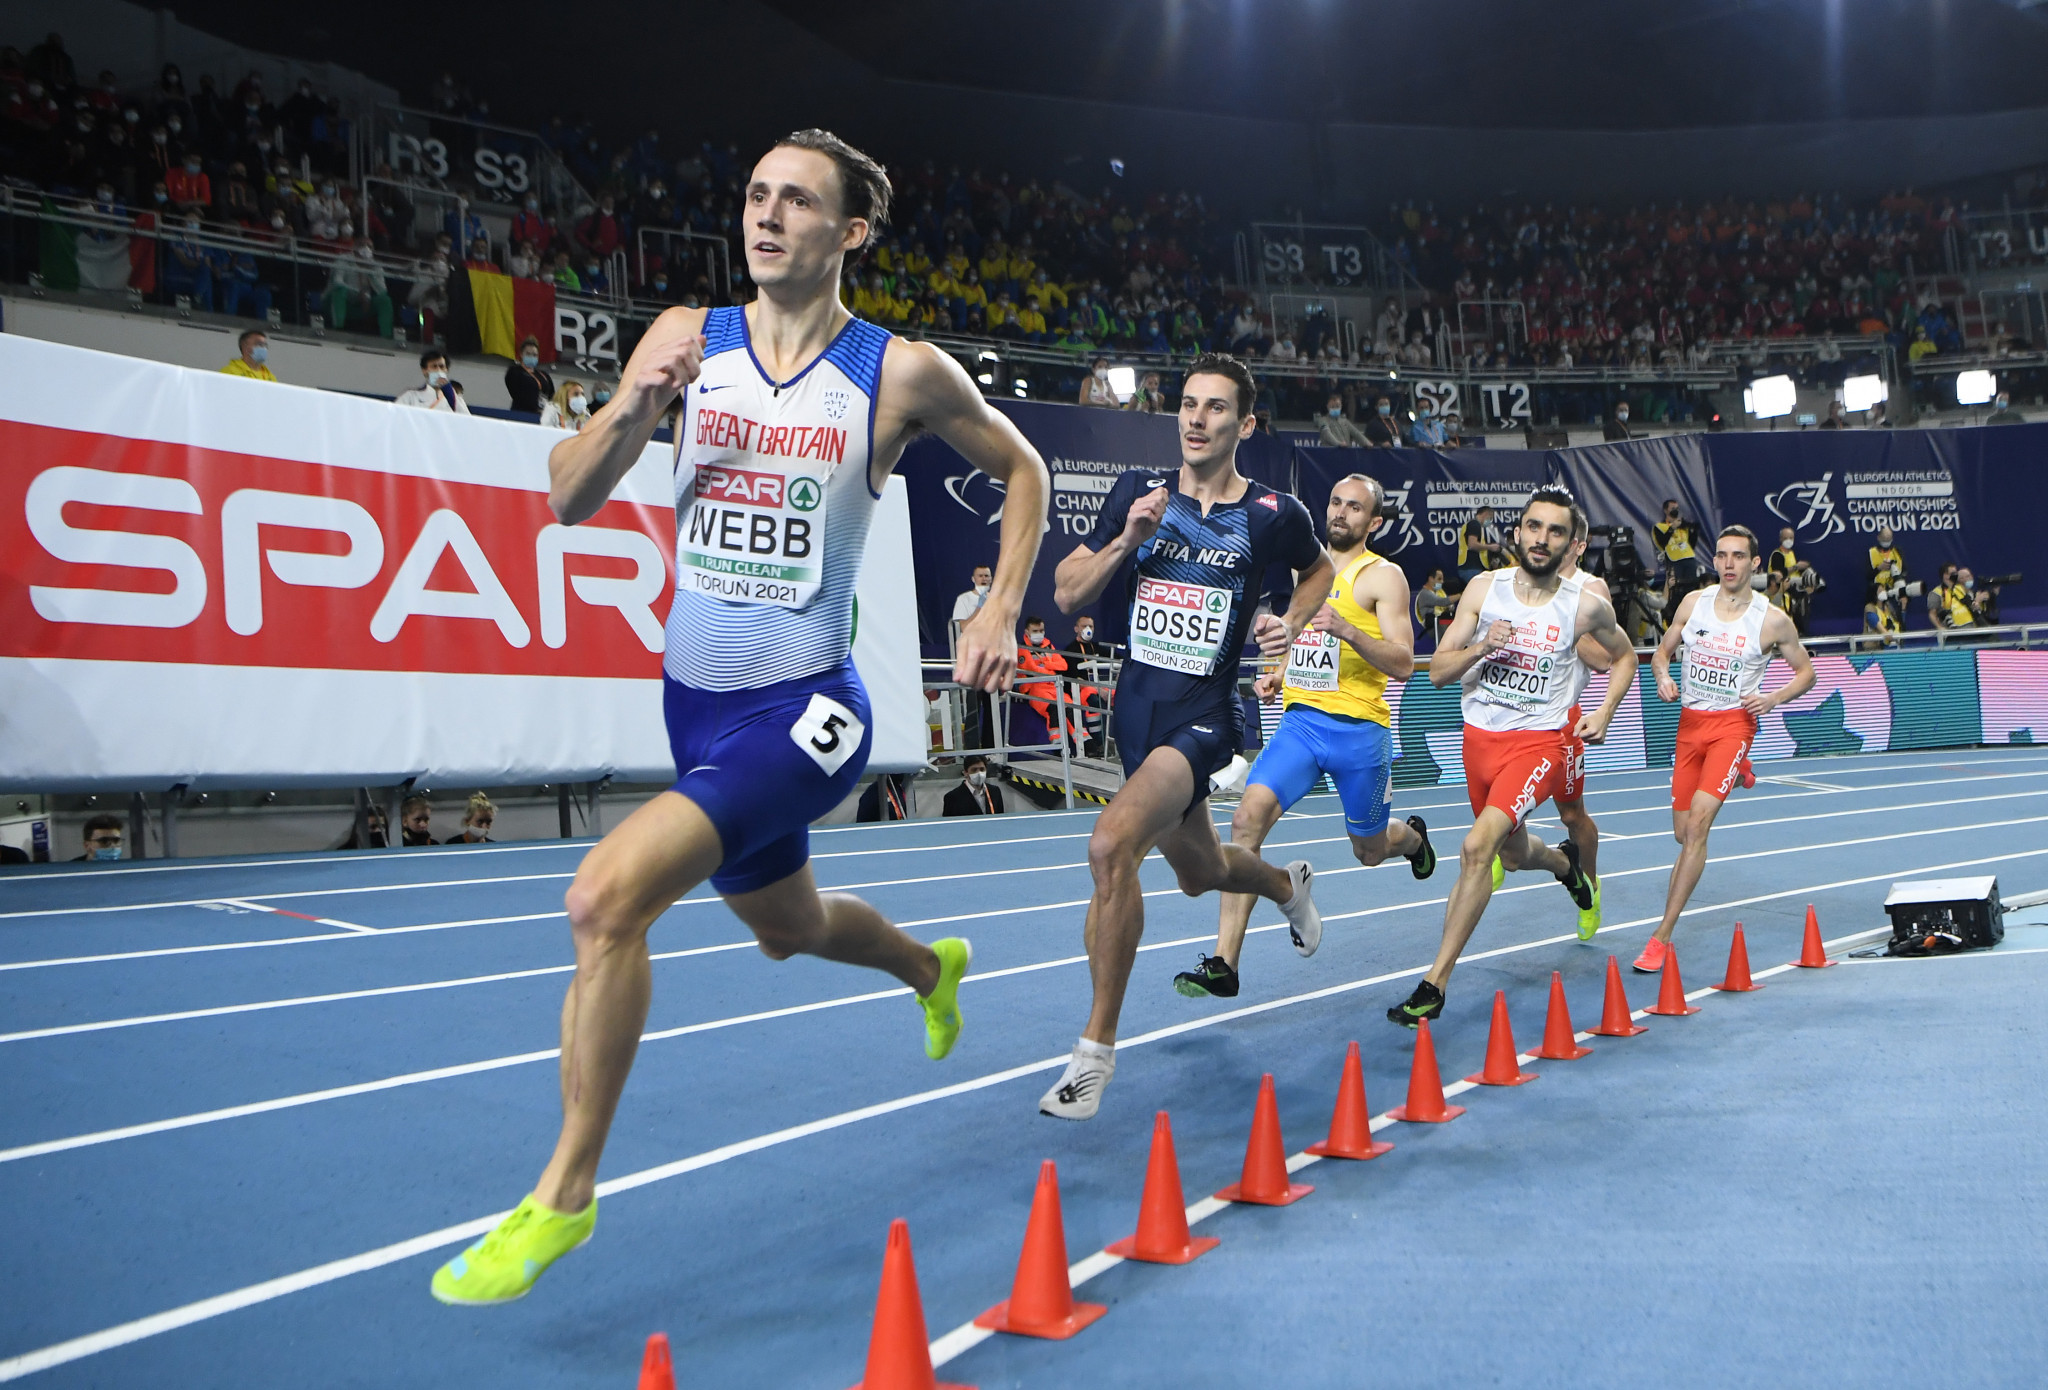 British Athletics has written to European Athletic to express its concerns over anti-virus measures in Torun ©Getty Images